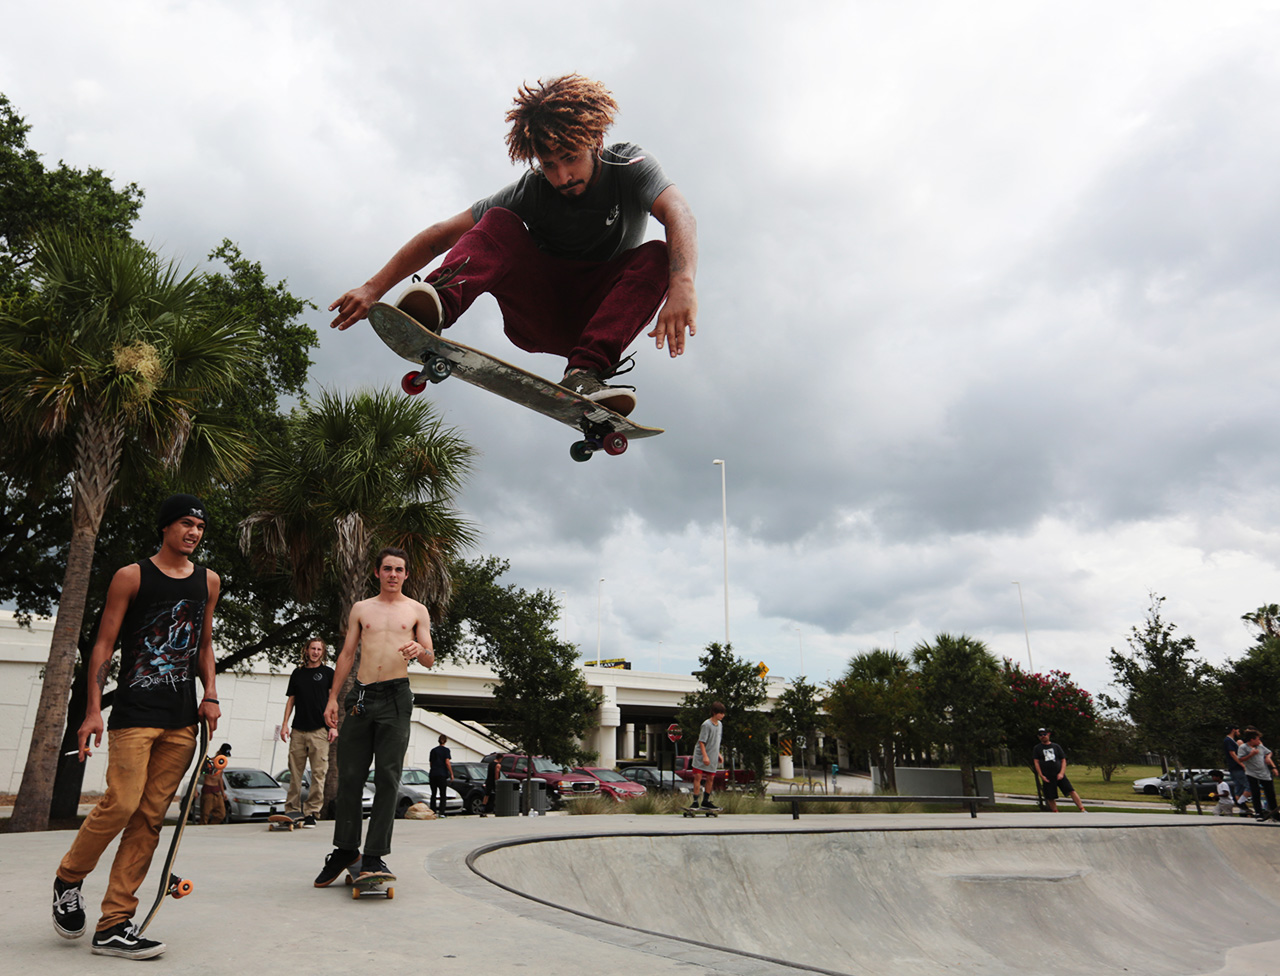 Luis Bermudez, 21, of Tampa, flies over the lip of the bowl before the Go Skateboarding Day at the Bro Bowl located at Perry Harvey Sr. Park on Thursday, June 21, 2018 in Tampa